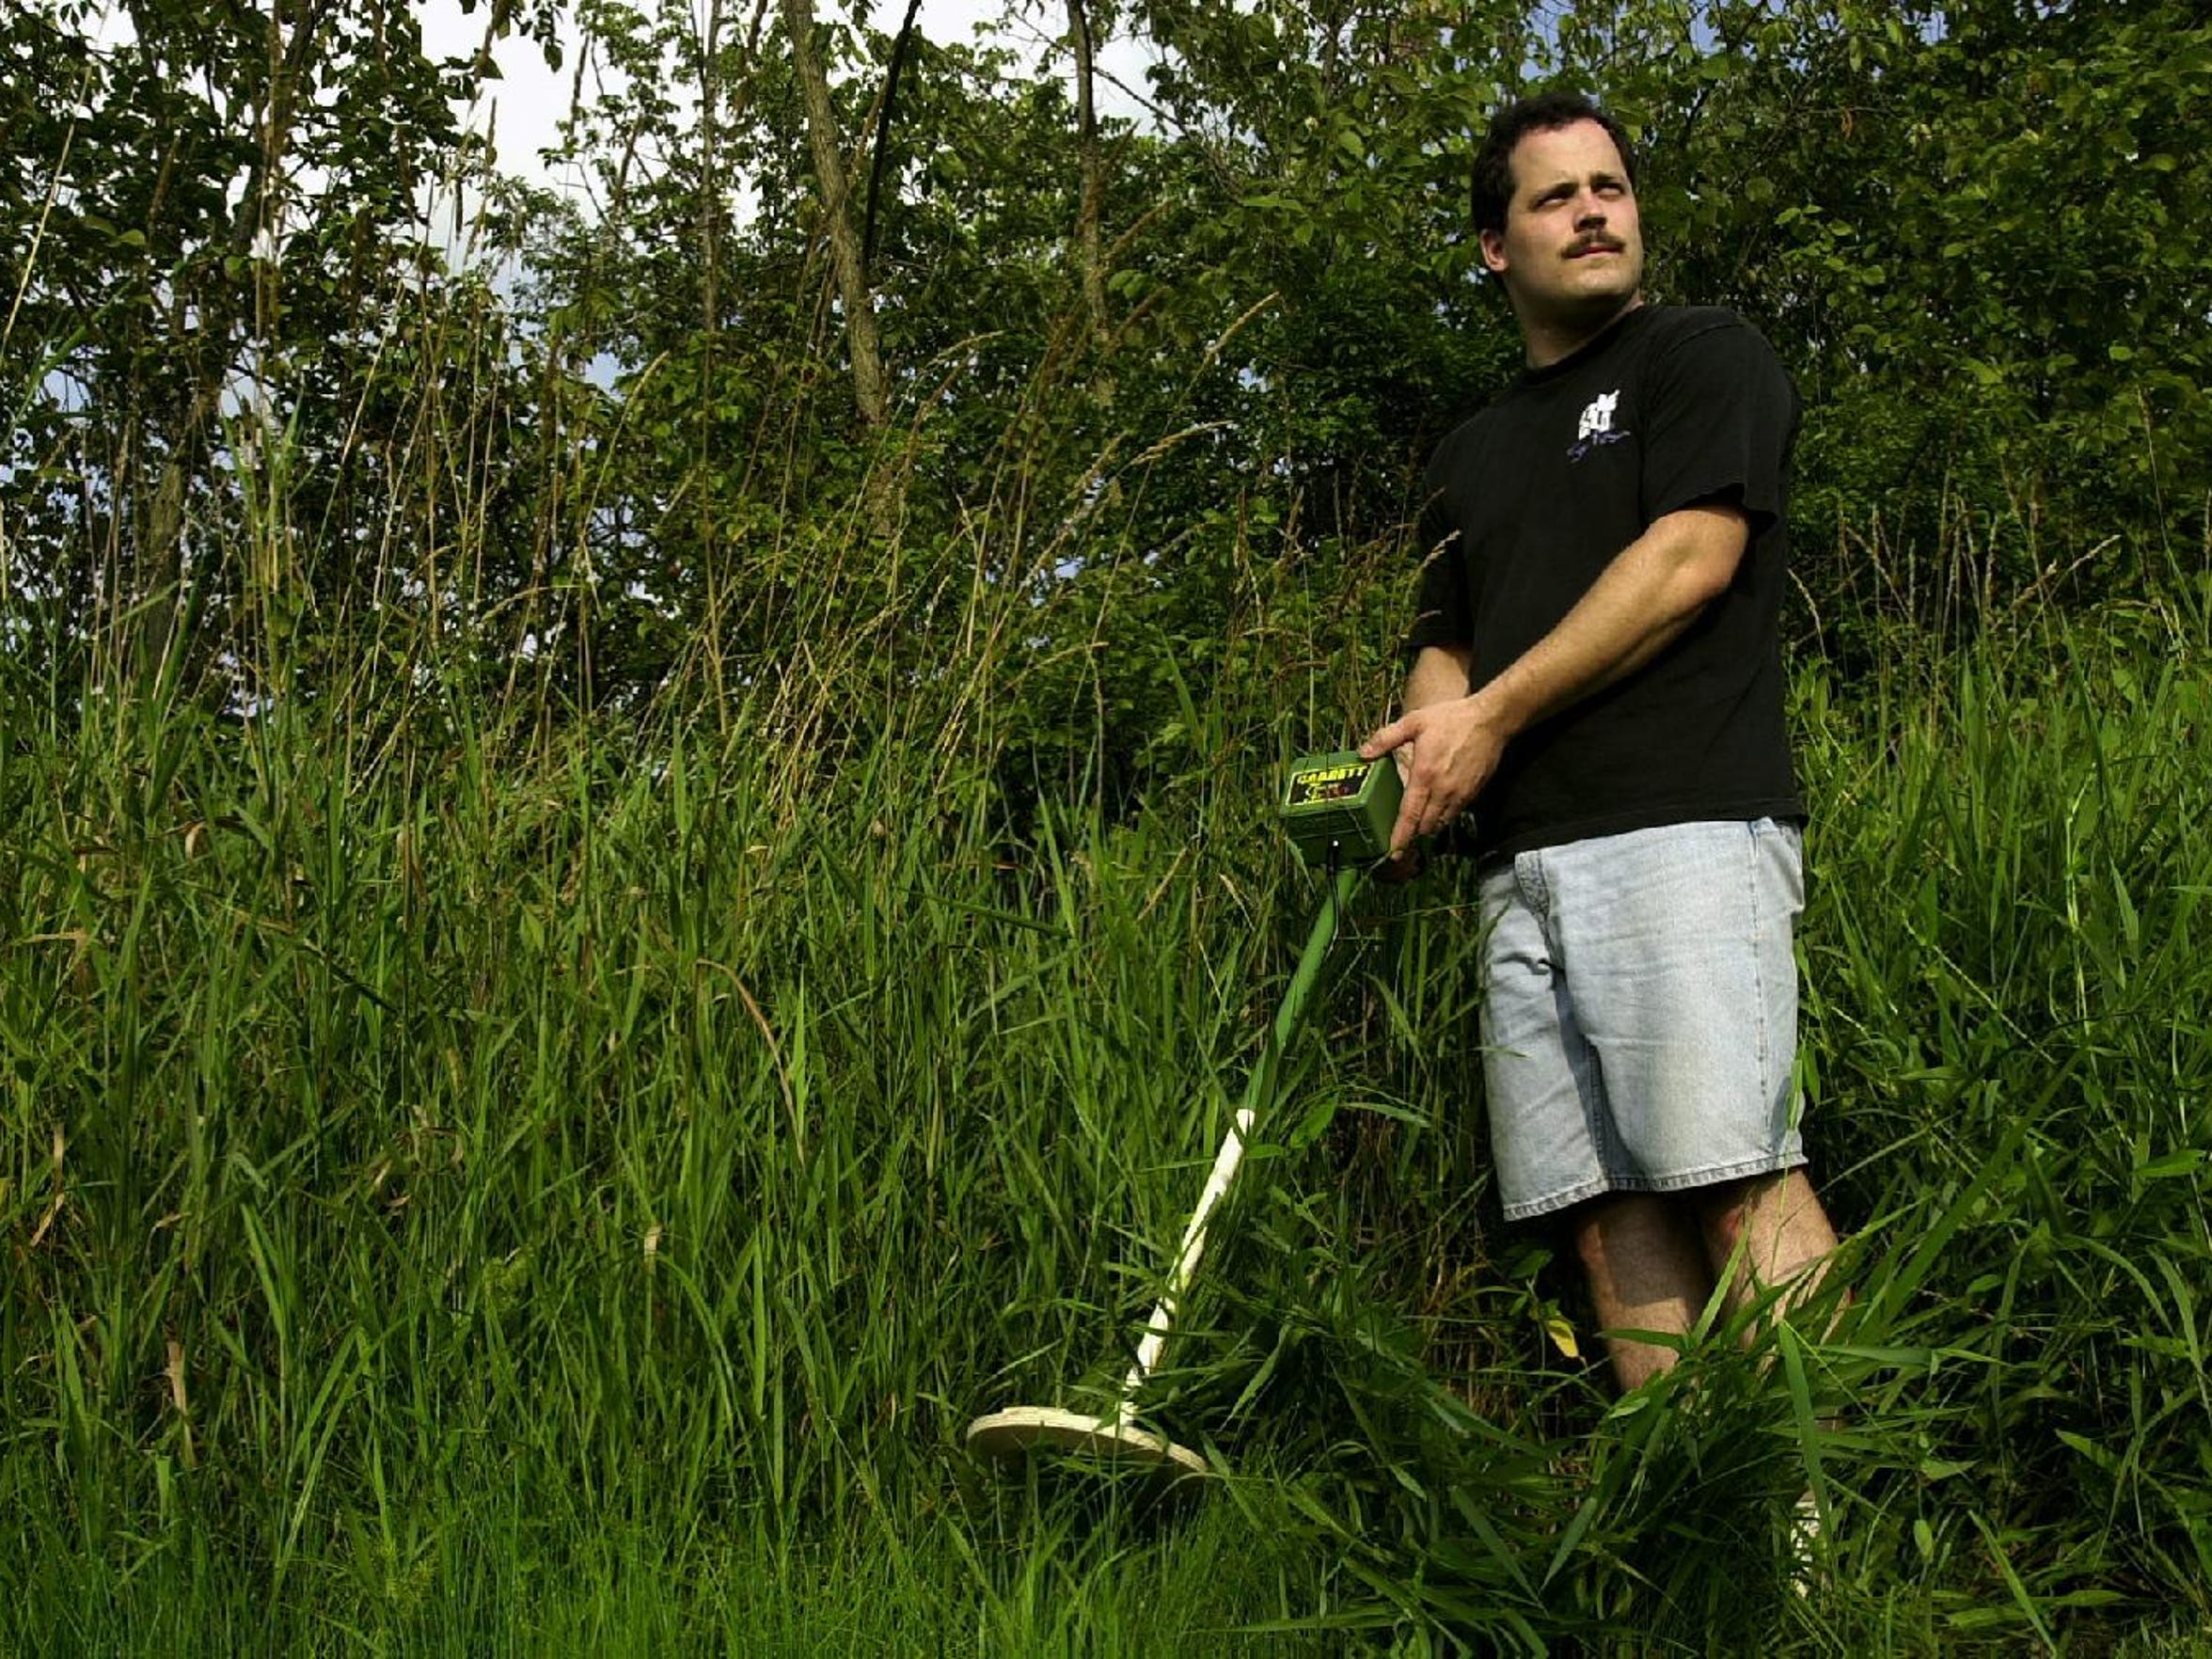 Steven Tarsia borrowed a metal detector in 2003 and